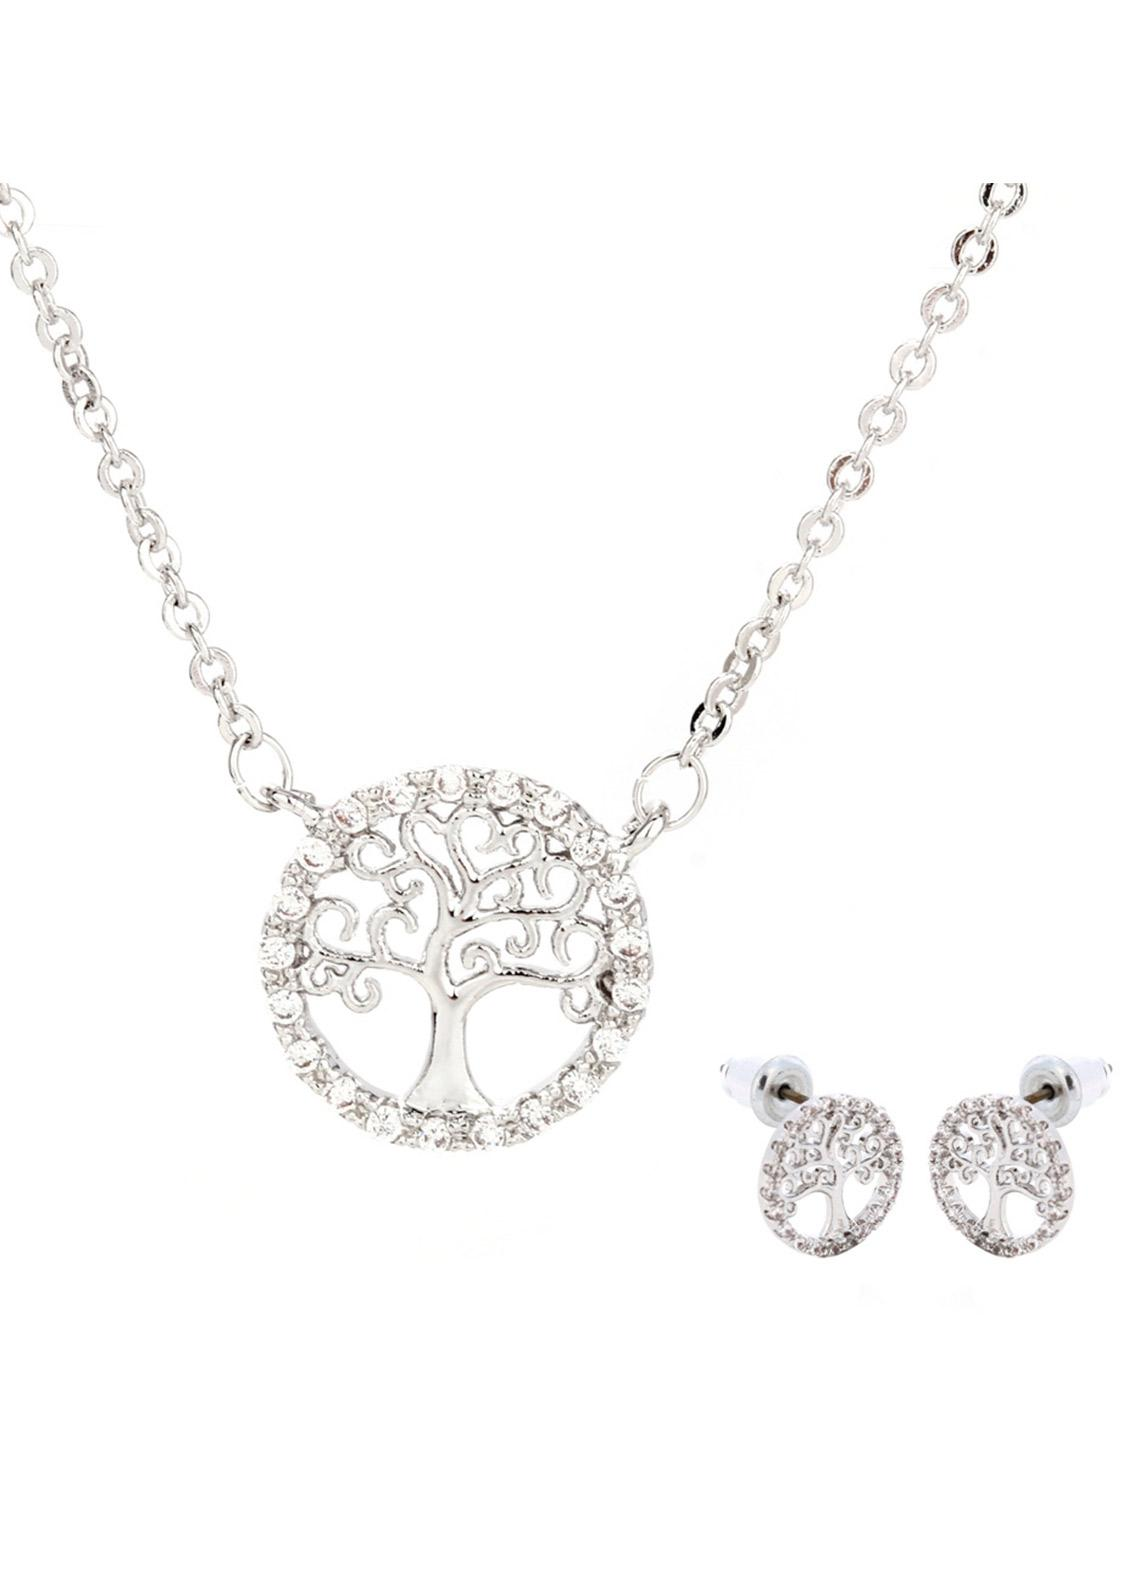 Anna Grace London by Silk Avenue Silver Plated Crystal Tree Of Life Necklace & Earrings Jewelry Set AGNE011 - Ladies Jewellery